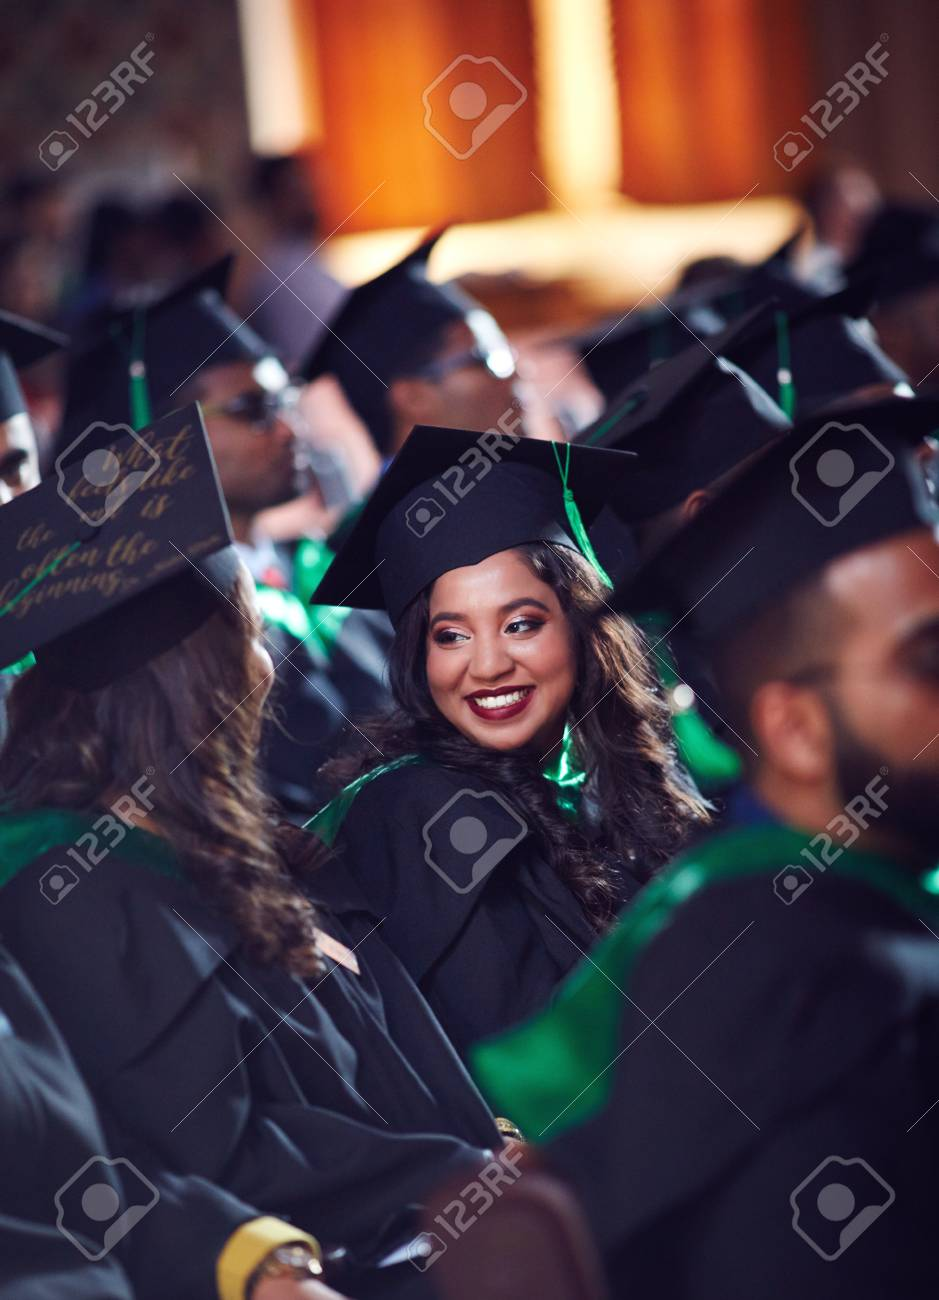 group of happy graduate students in gowns on graduation ceremony - 106236233